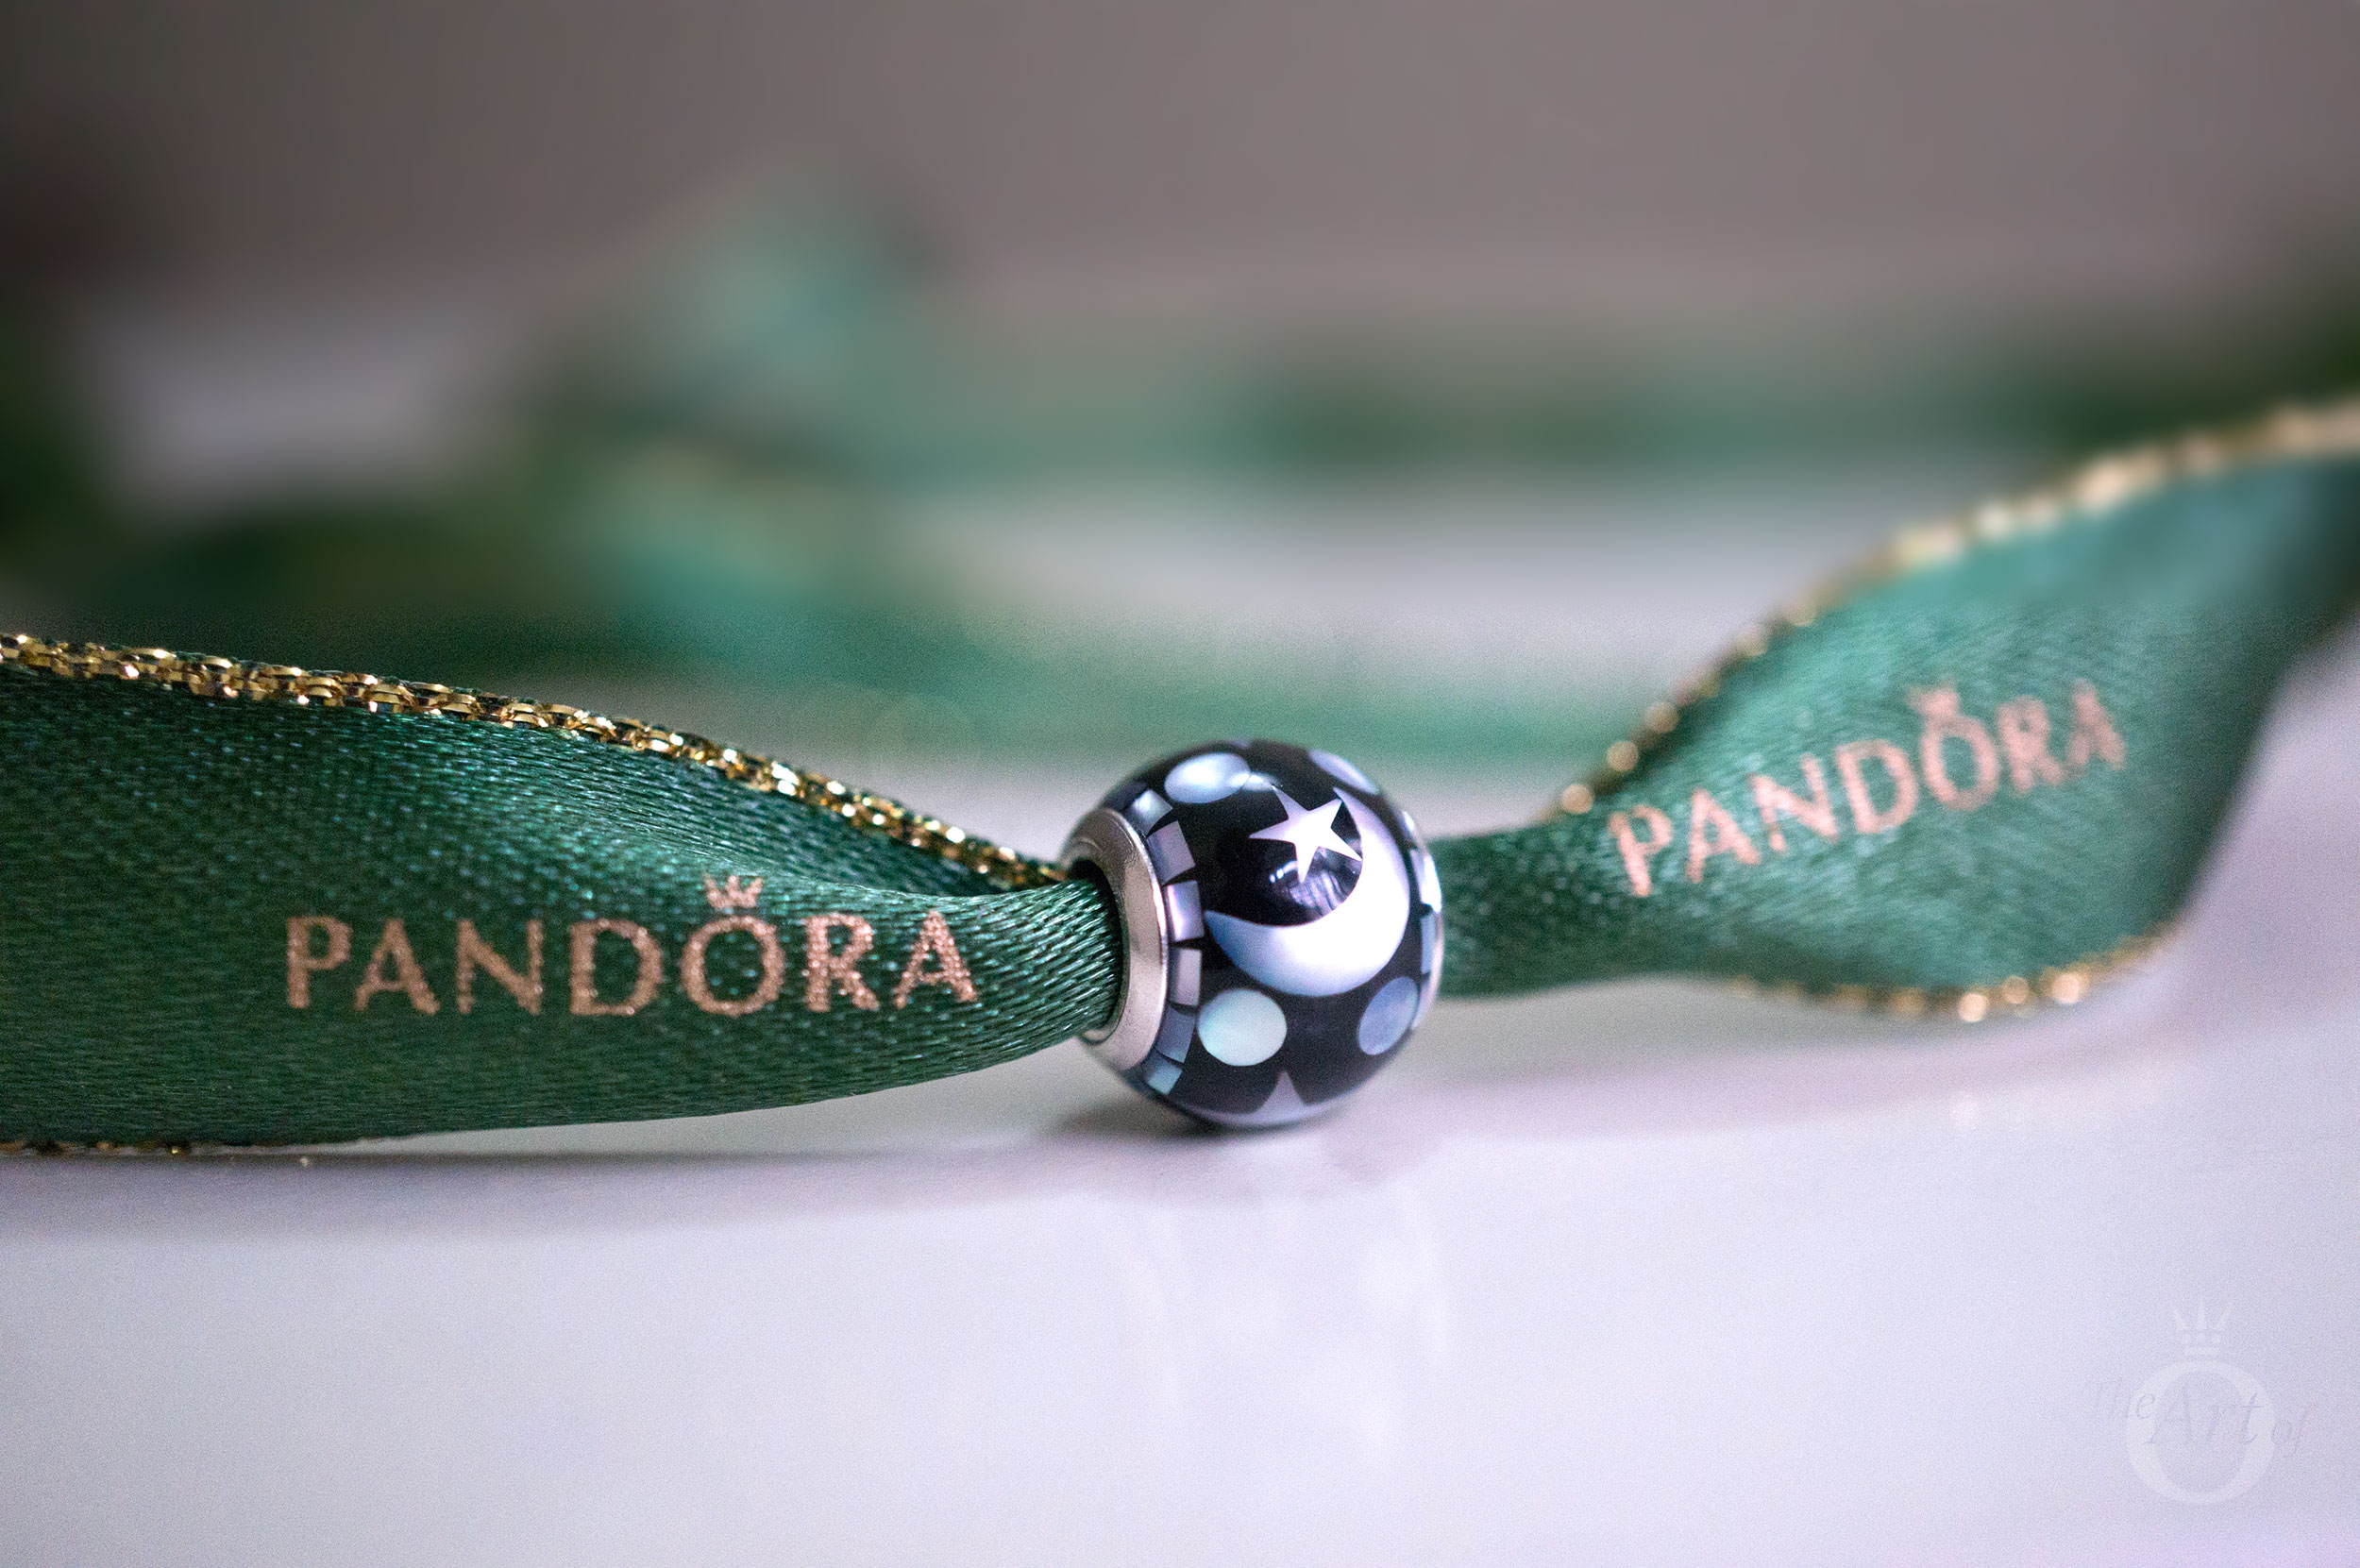 db28215fe3a REVIEW: PANDORA Celestial Mosaic Charm - The Art of Pandora | More ...